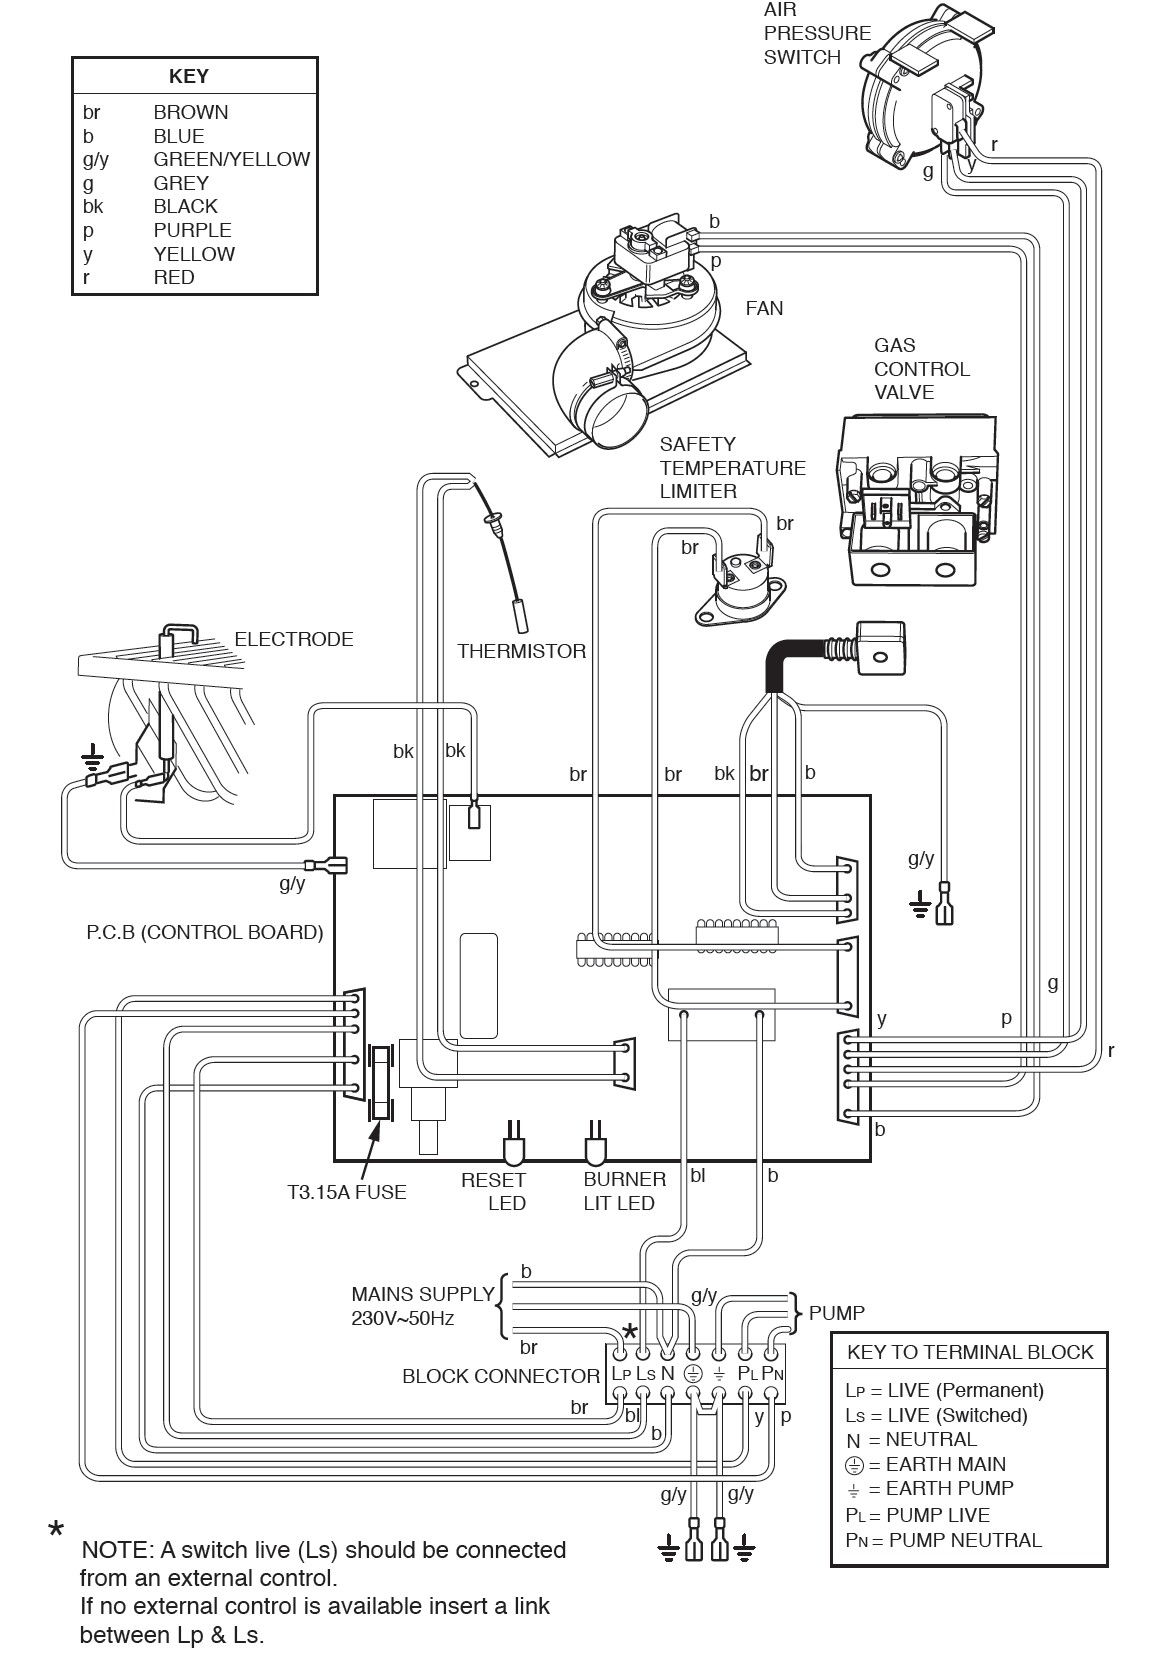 wiring diagram for suburban sf 42q furnace wiring diagram